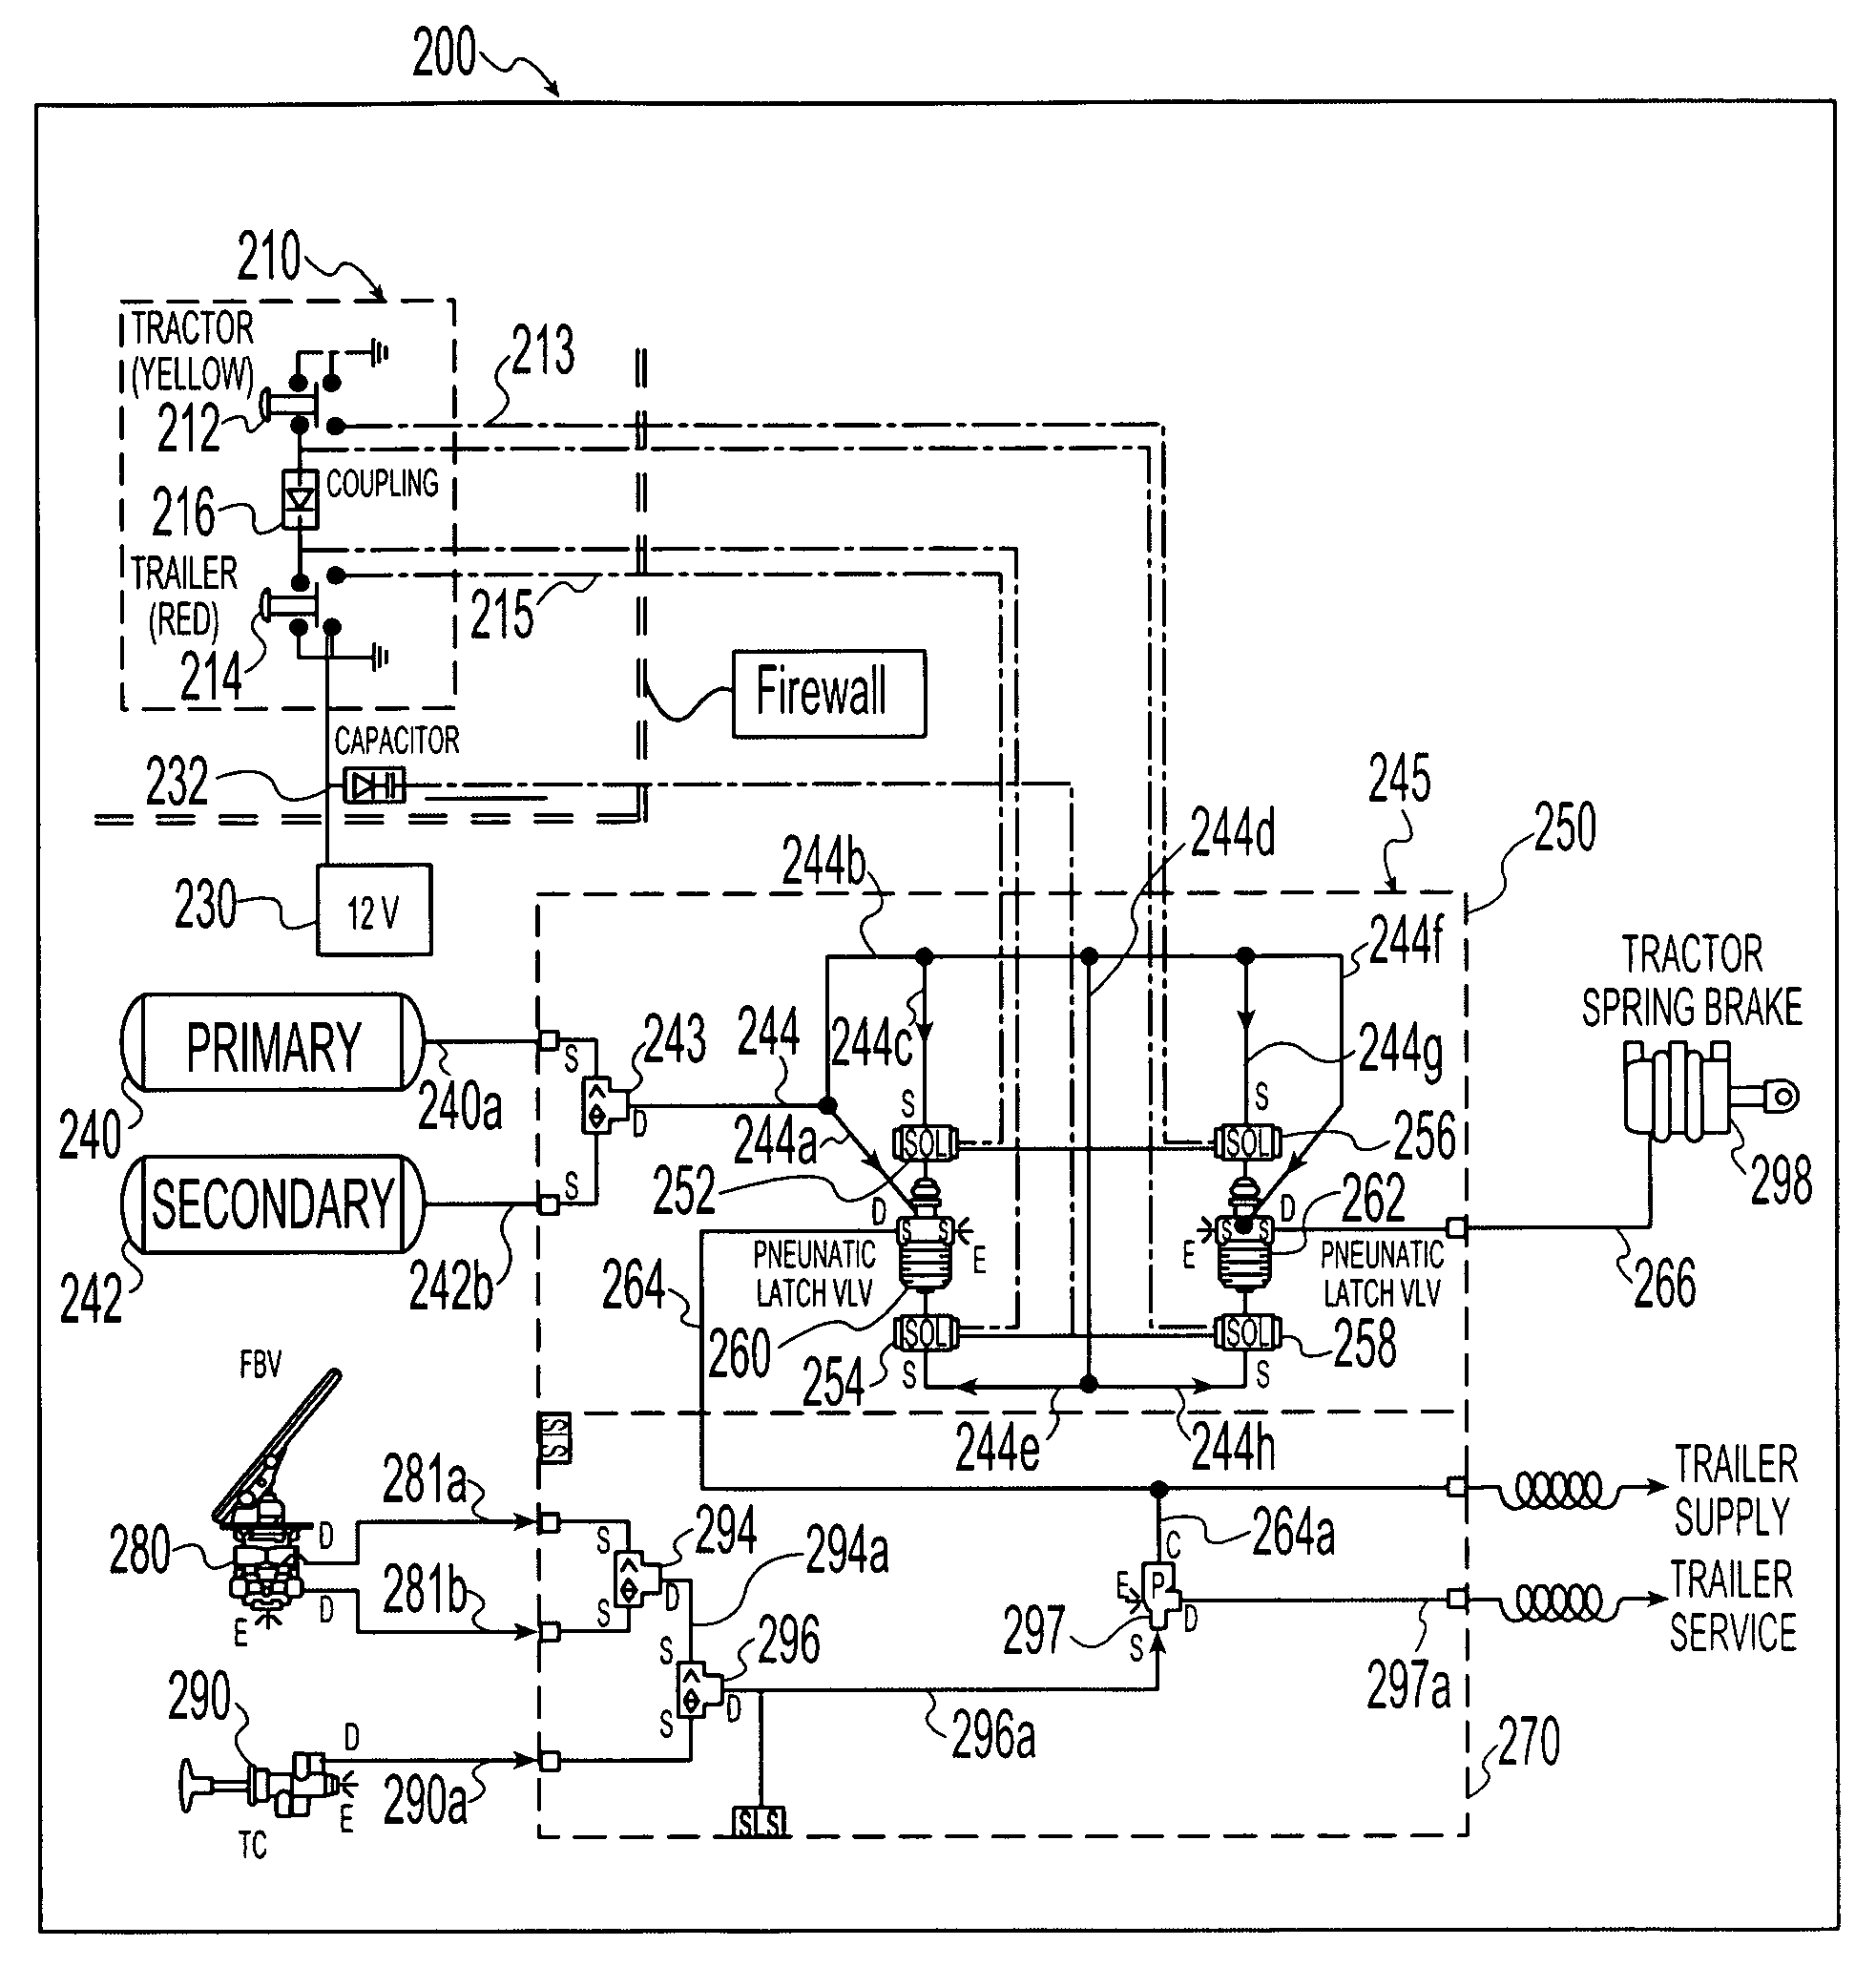 US07396089 20080708 D00000 patent us7396089 electro pneumatic latching valve system meritor abs wiring diagram at crackthecode.co